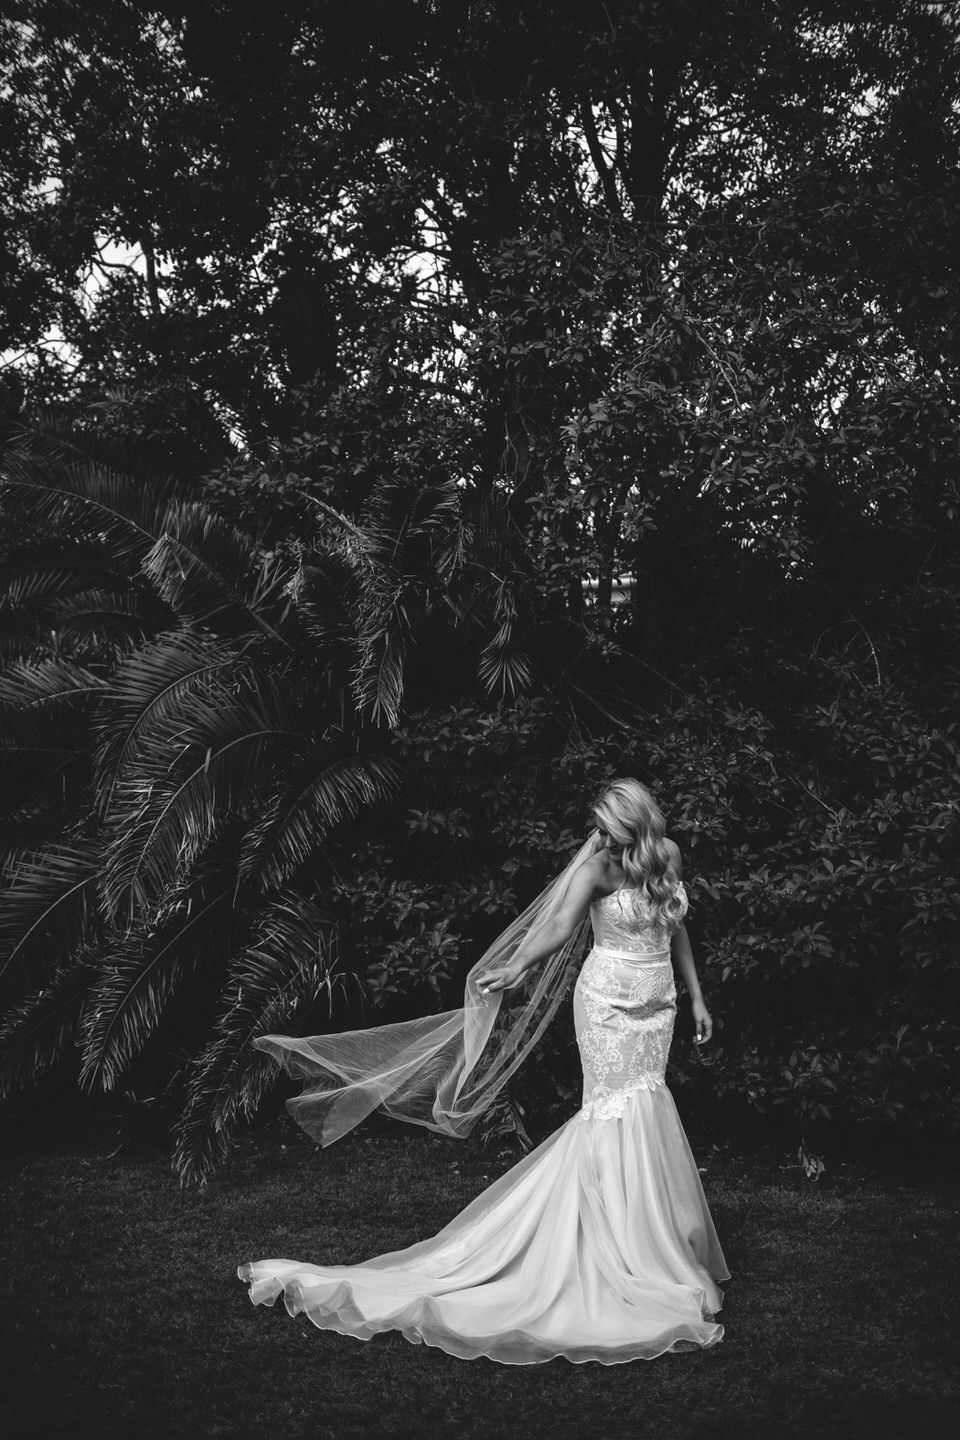 Bride holding her veil standing in front of palm trees in Vaucluse